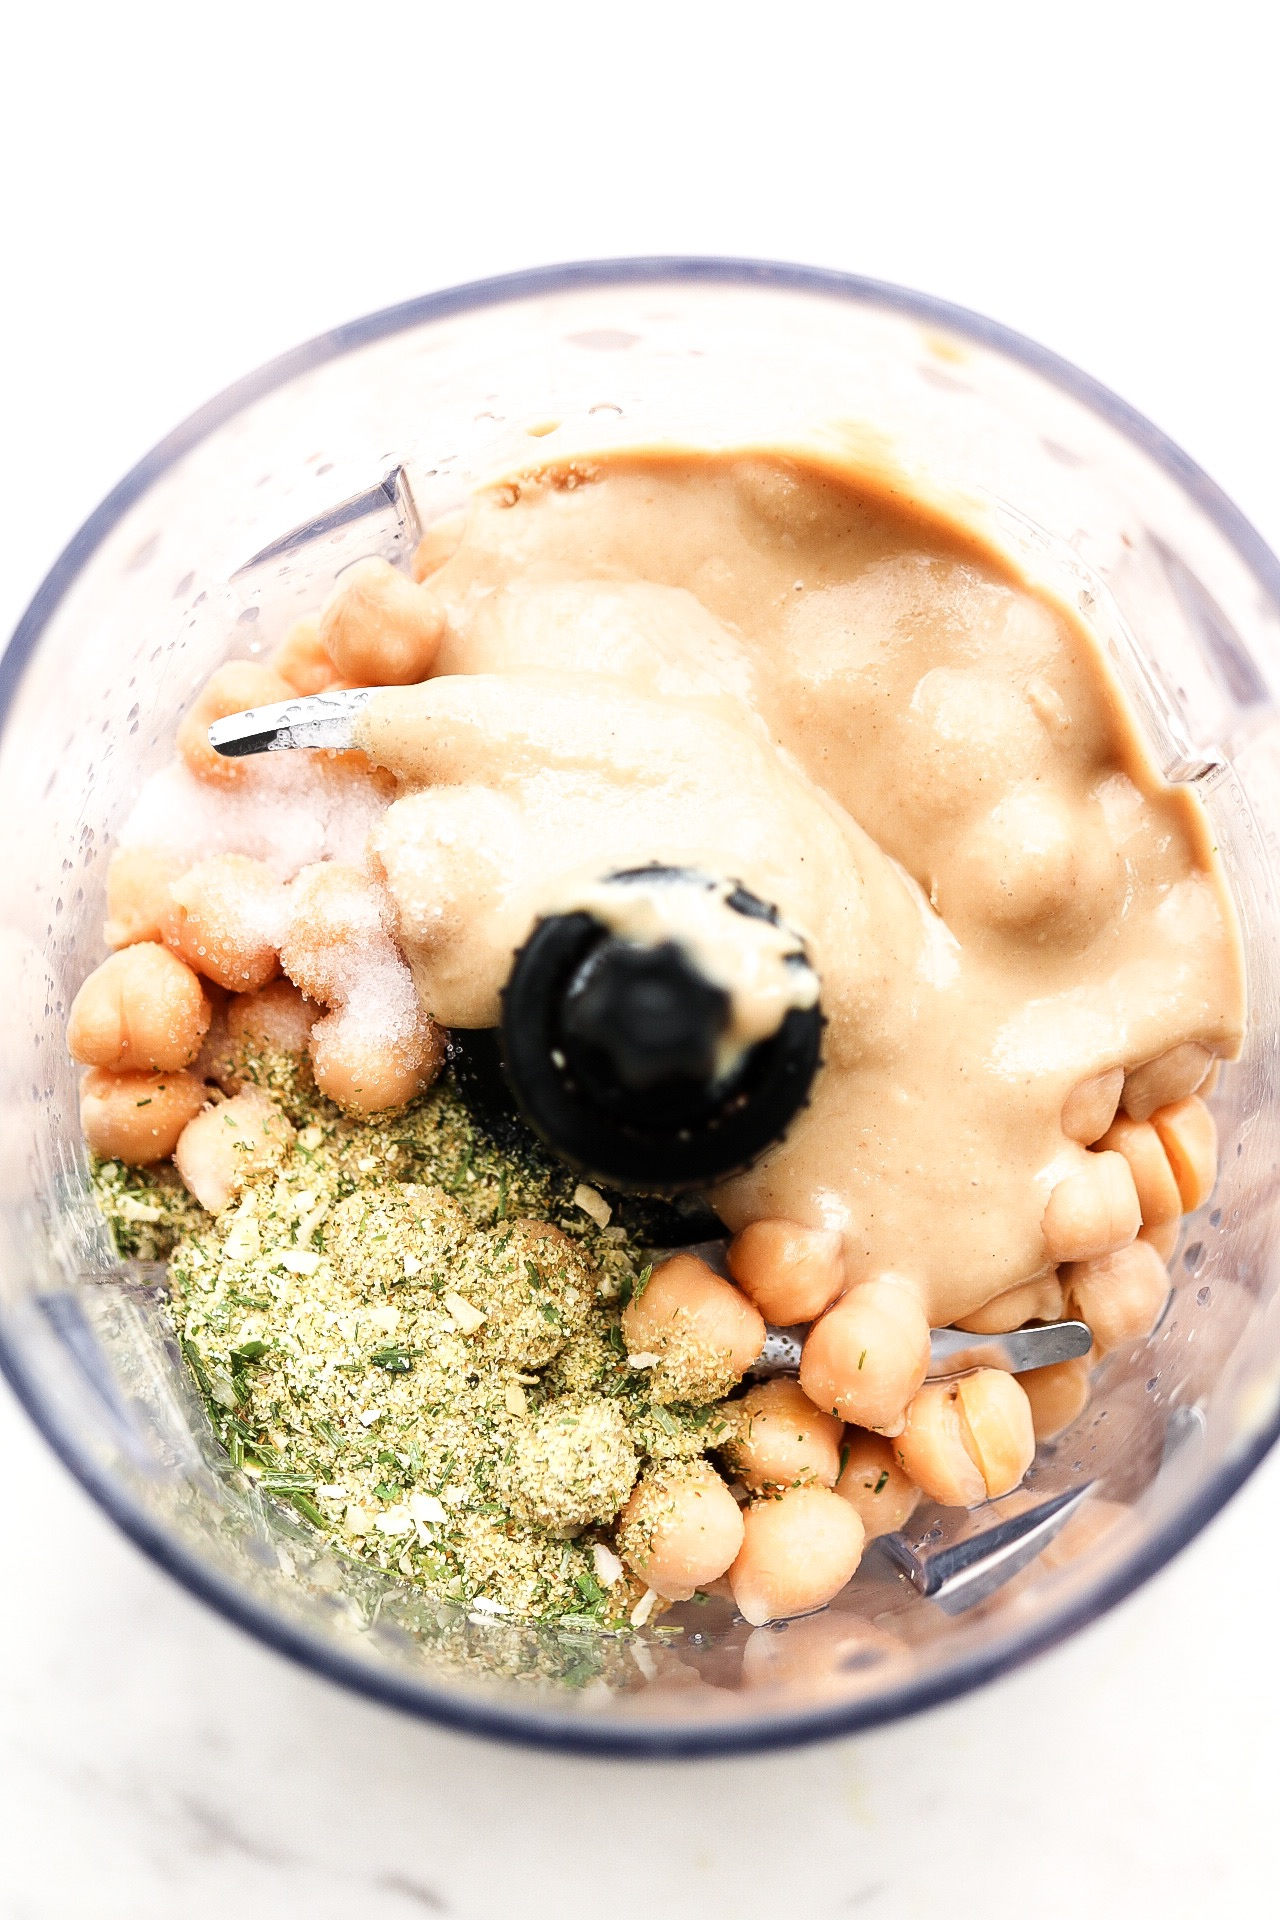 Just place all of your ingredients in the food processor!